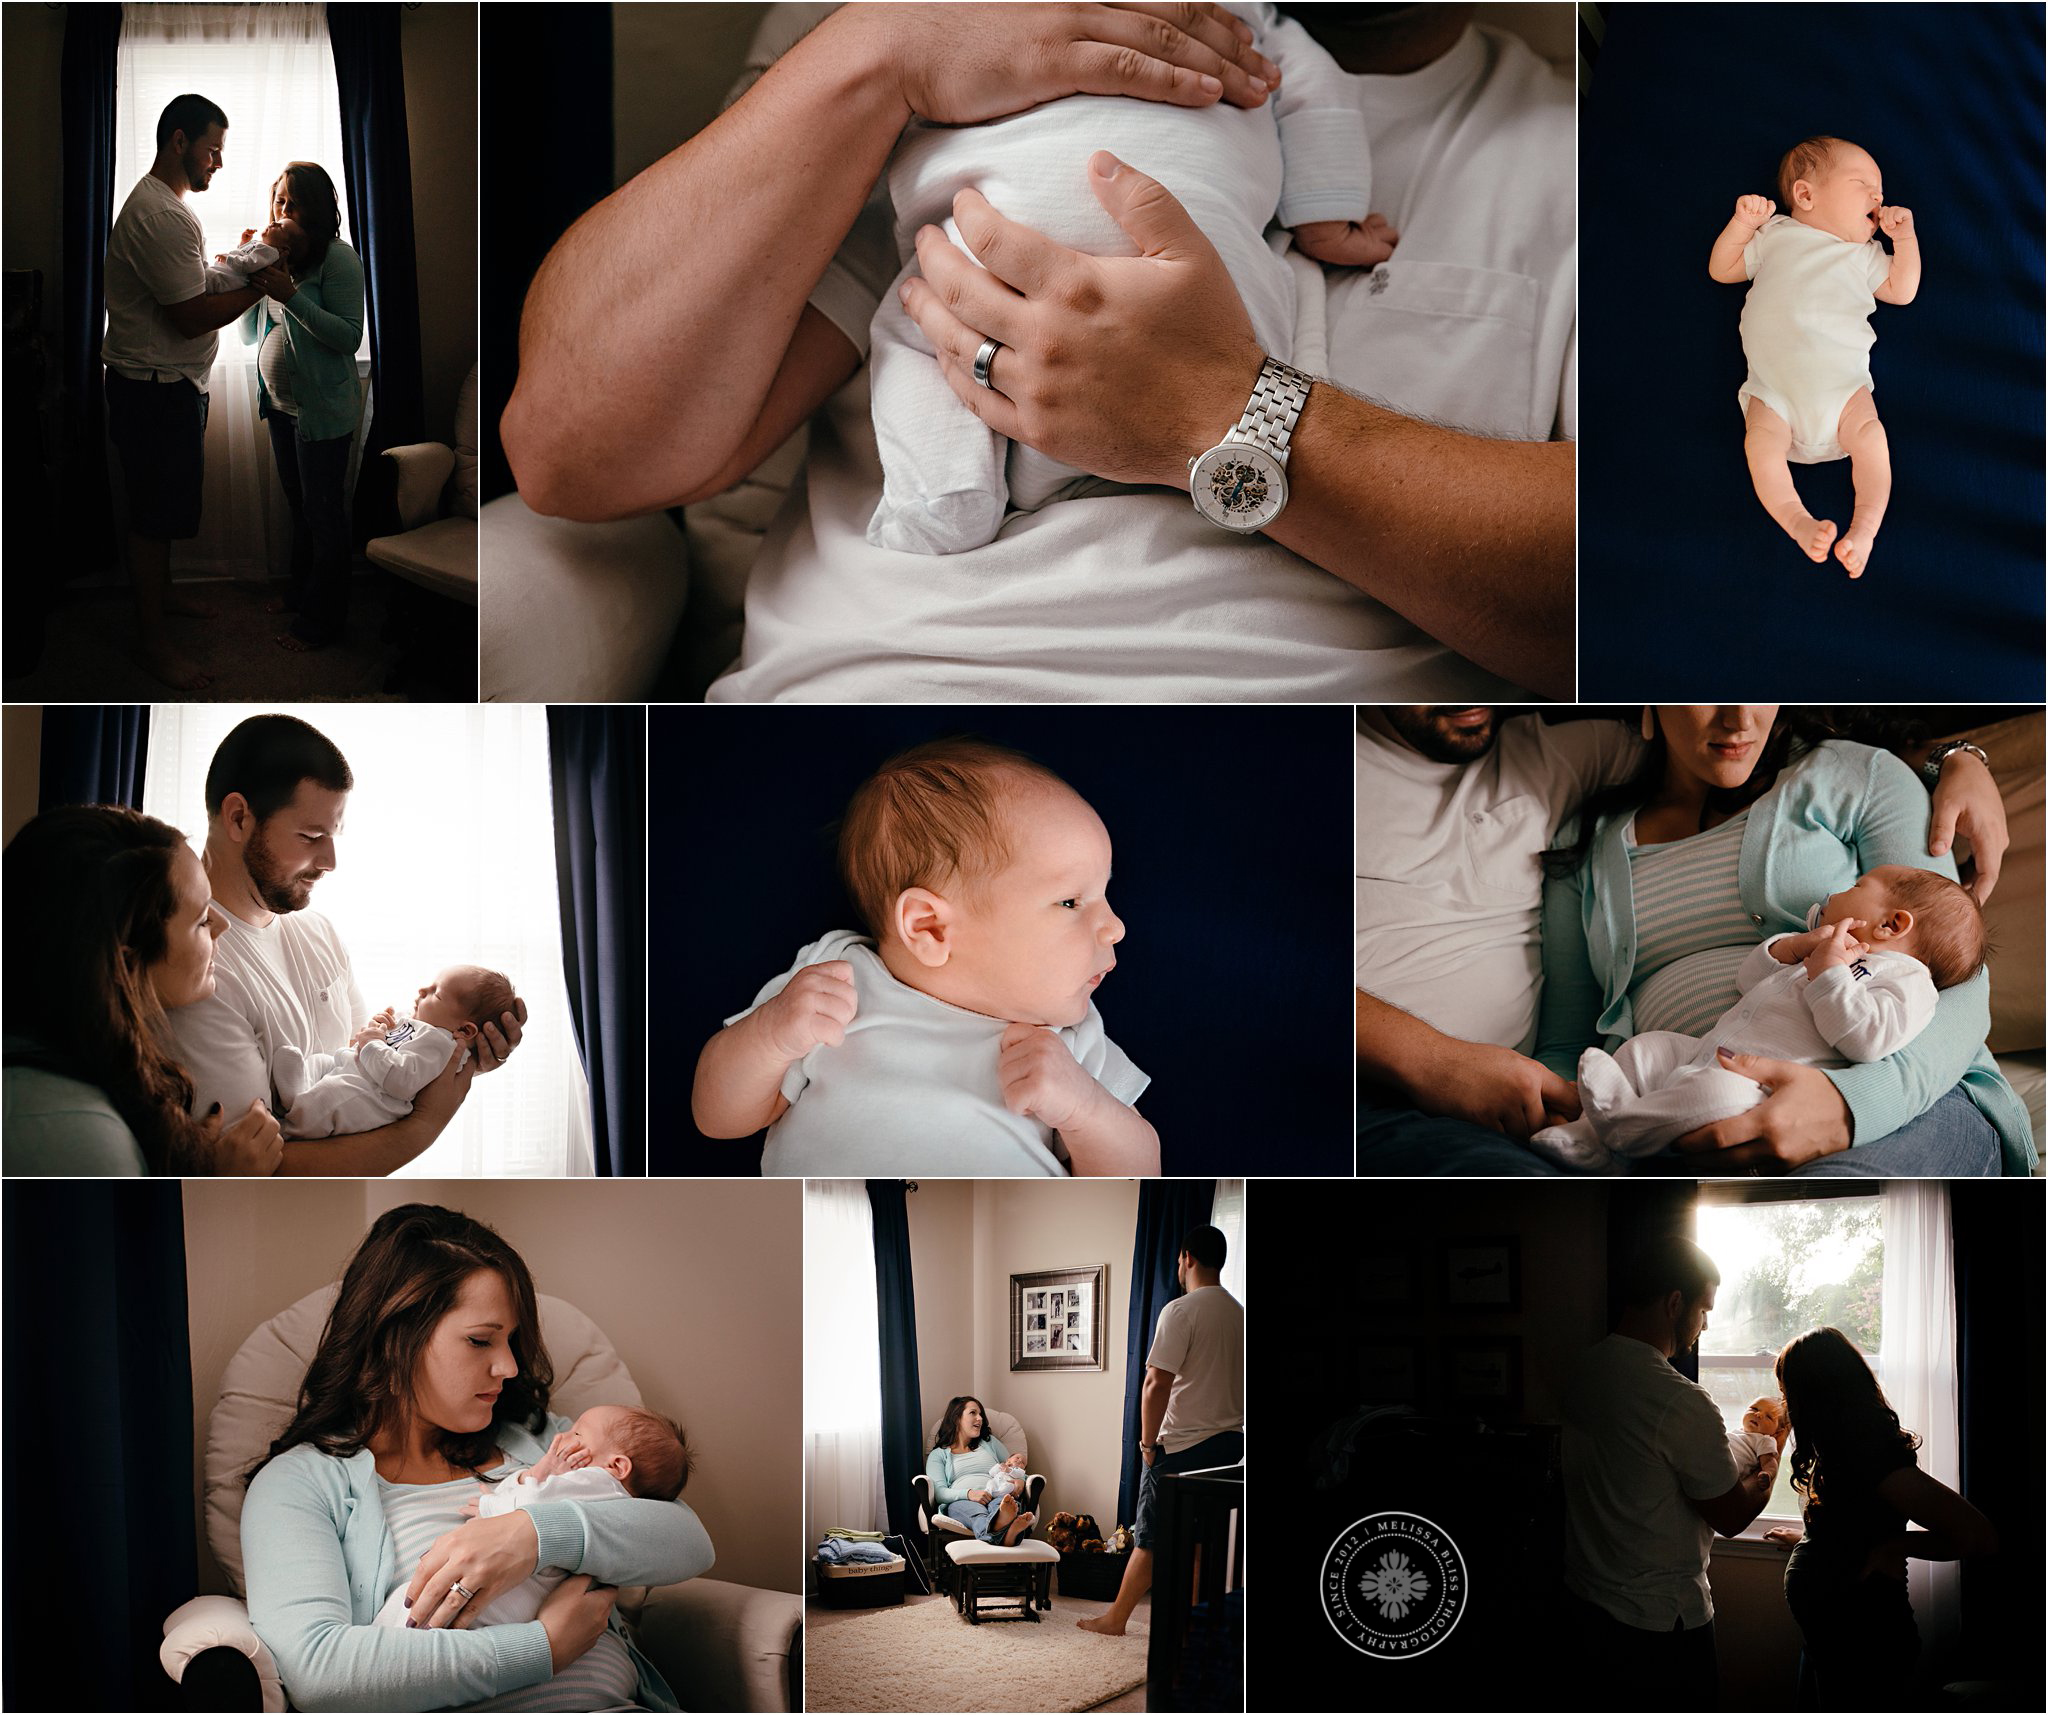 melissa-bliss-photography-hampton-roads-lifestyle-newborn-photographer-virginia-beach-norfolk-chesapeake-portsmouth-photographer